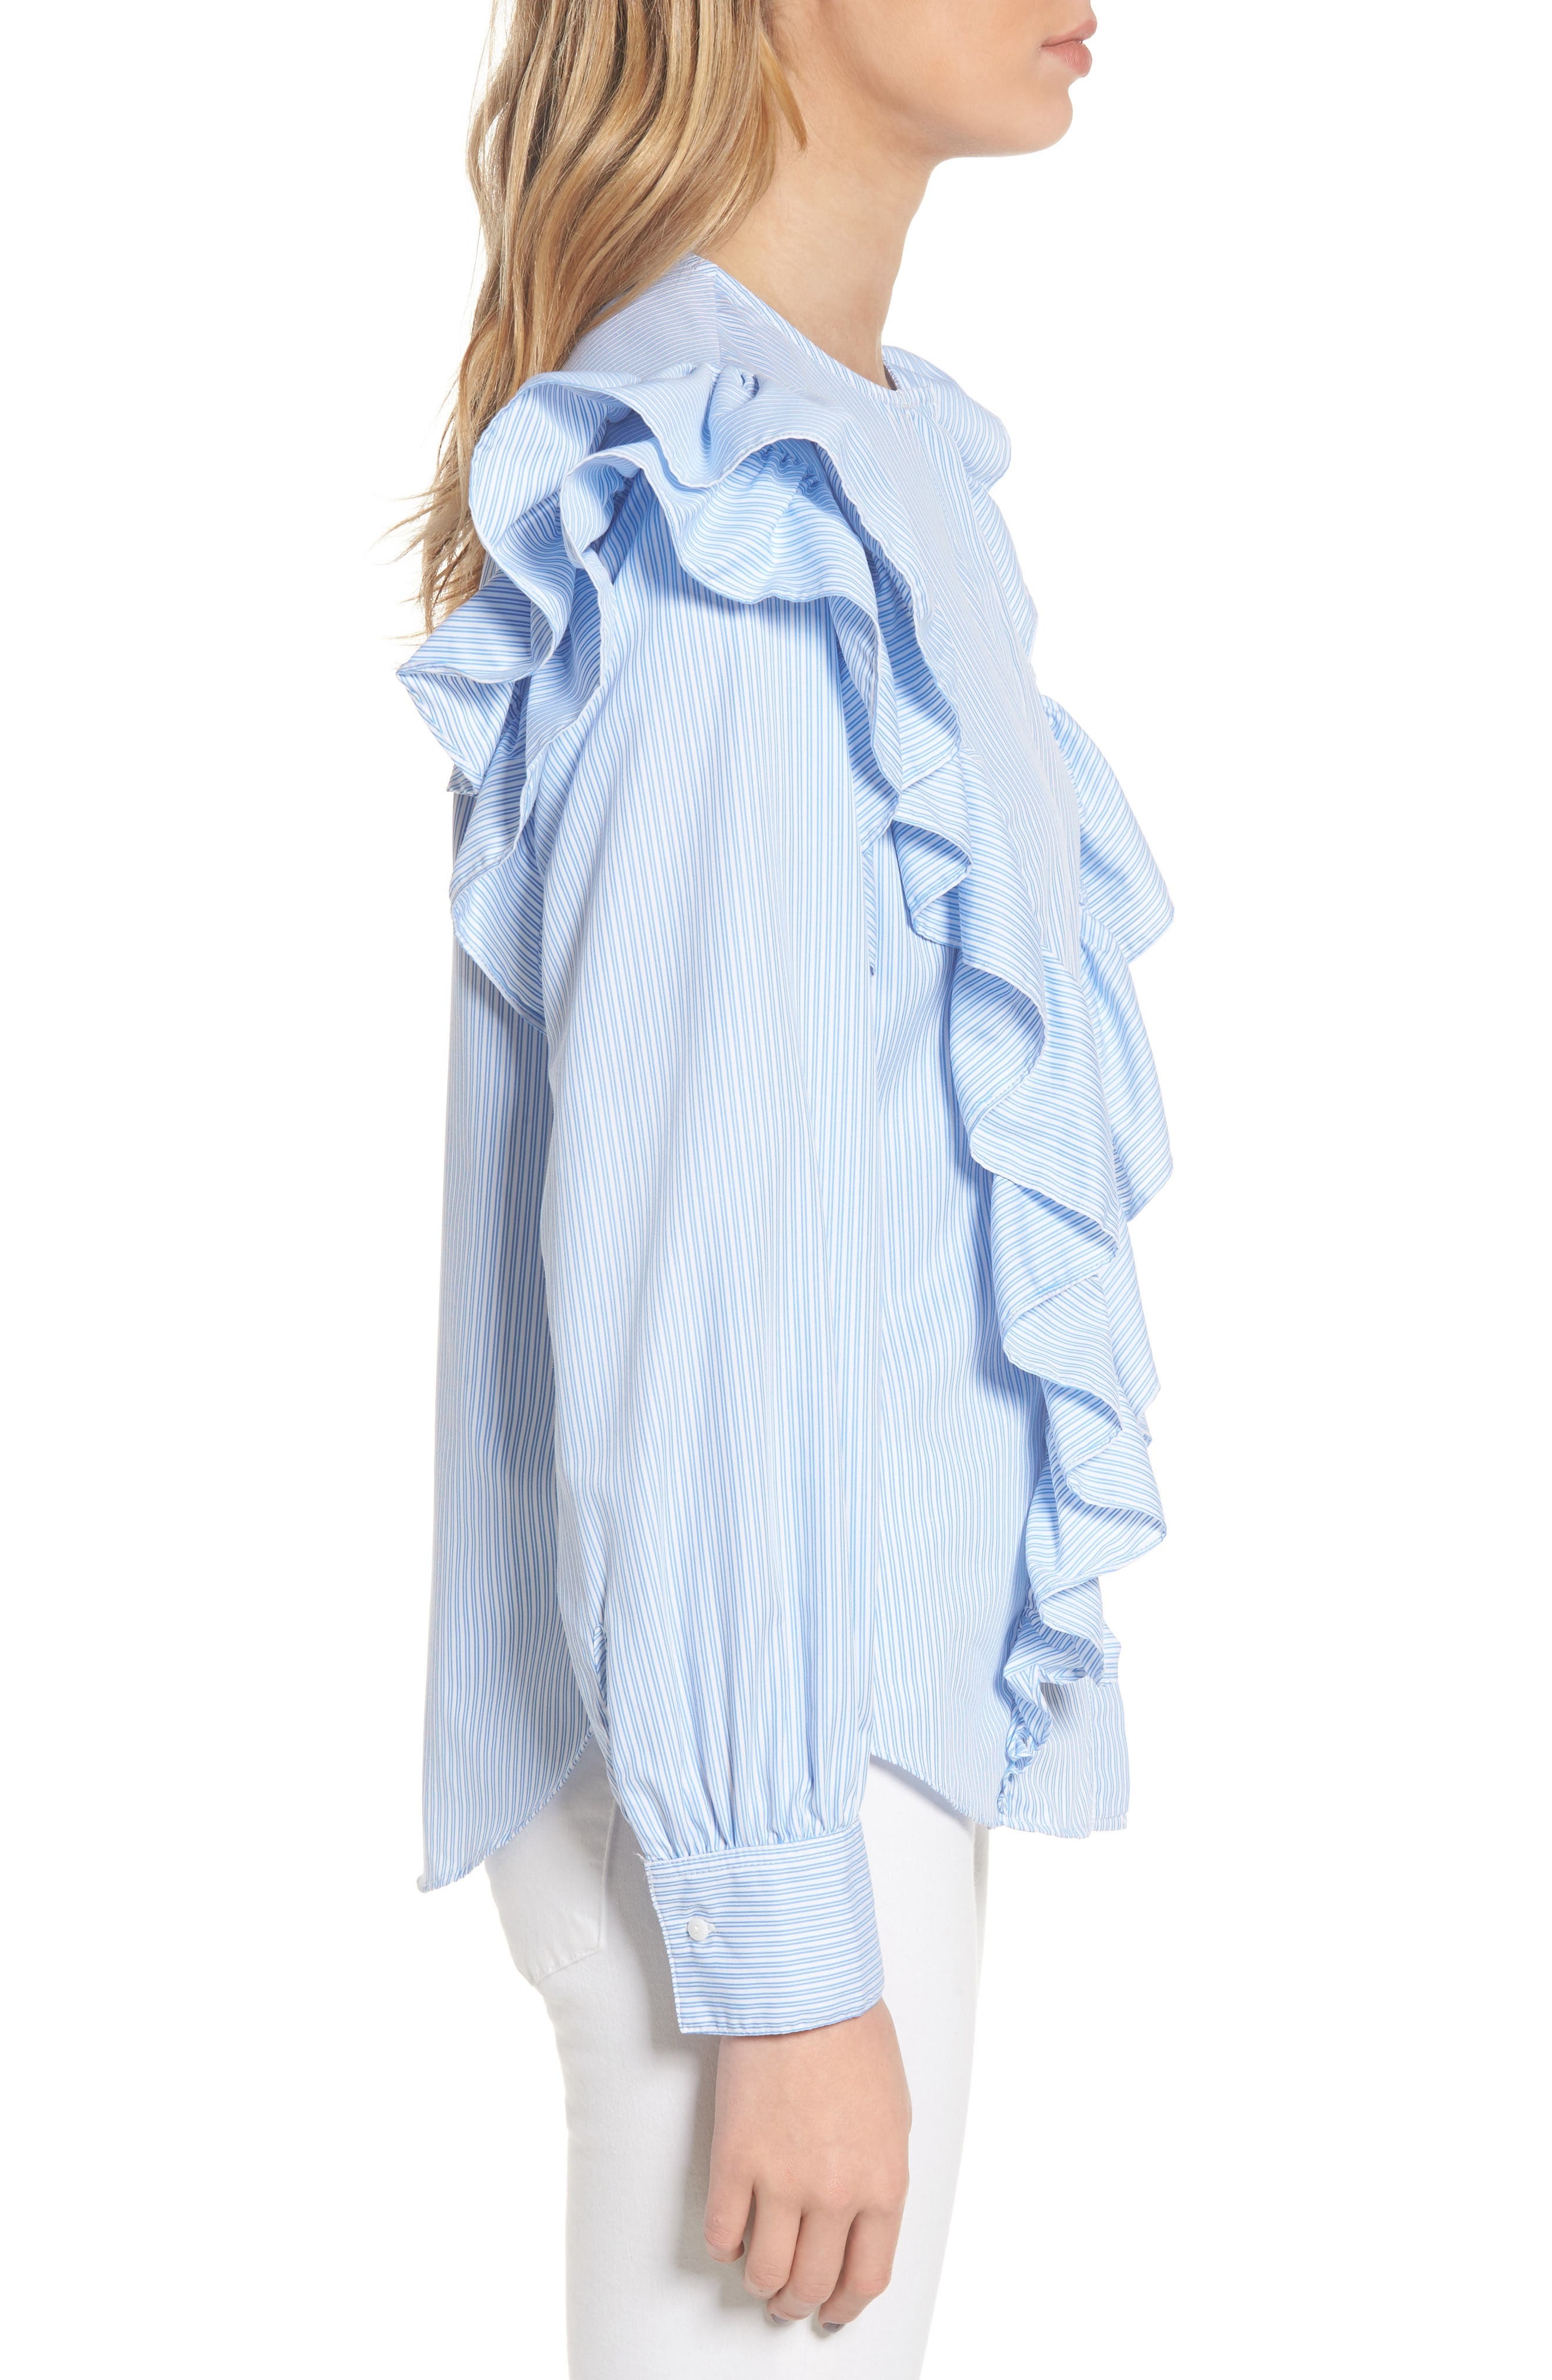 Girl Meets Boy Ruffle Top,                             Alternate thumbnail 4, color,                             Striped Blue